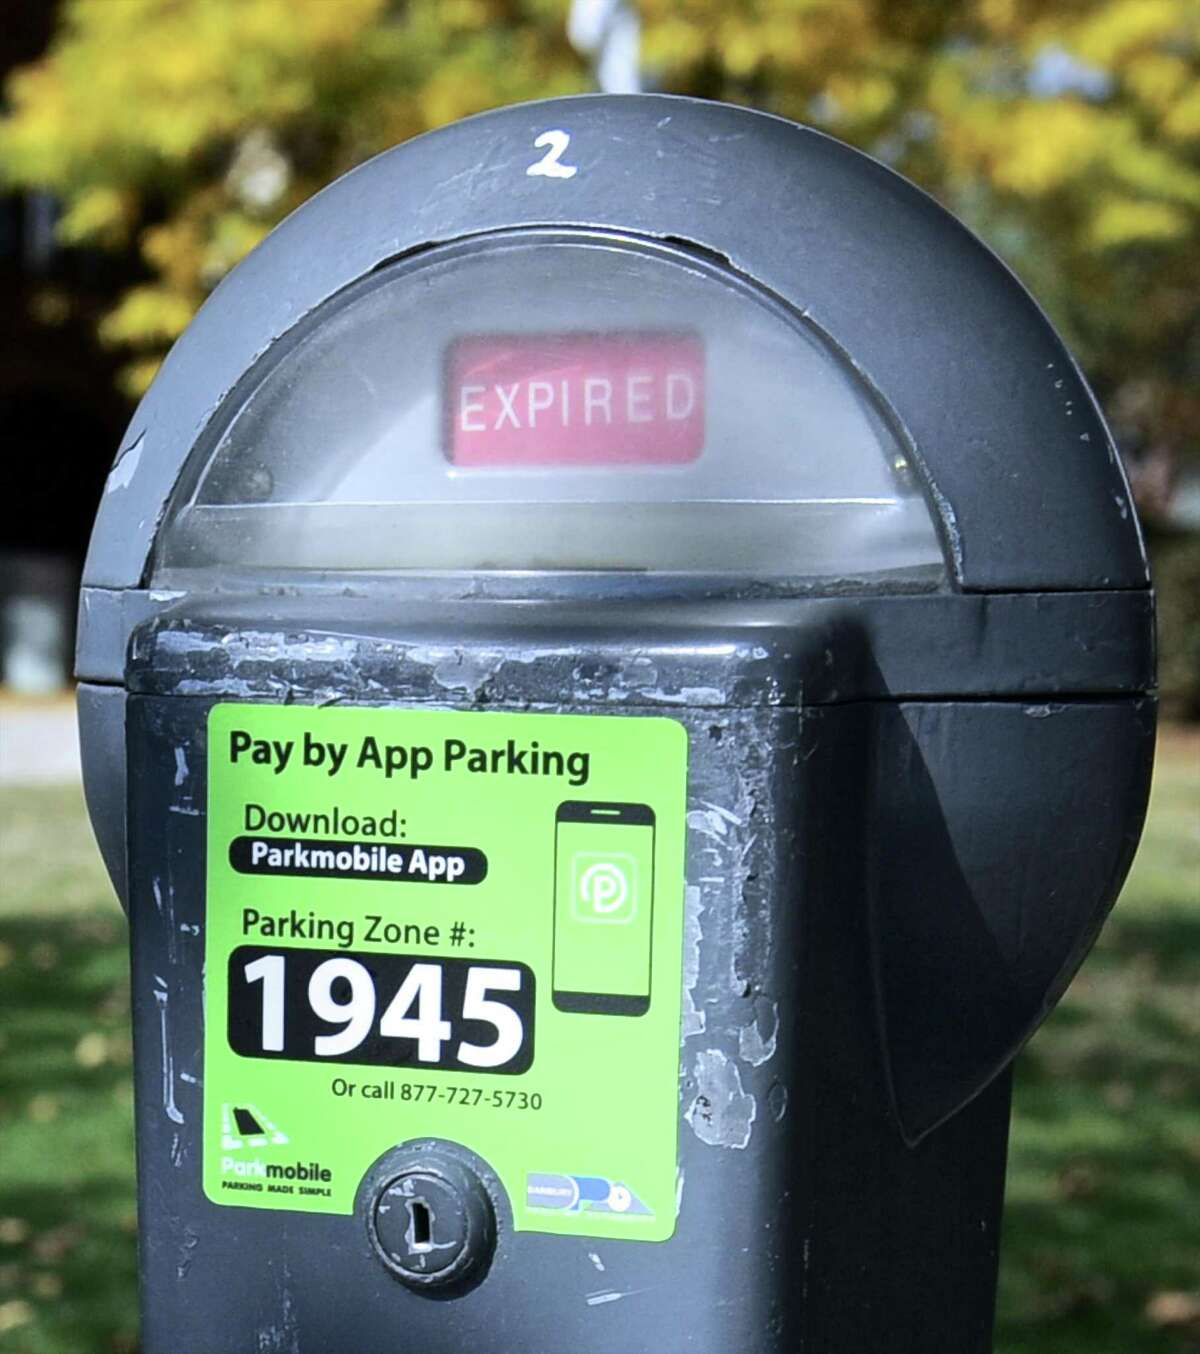 The Danbury Parking Authority has announced mobile payments for downtown parking through the ParkMobil App for Android , Windows and iPhone smartphones. Wednesday, October 19, 2016, in Danbury, Conn.